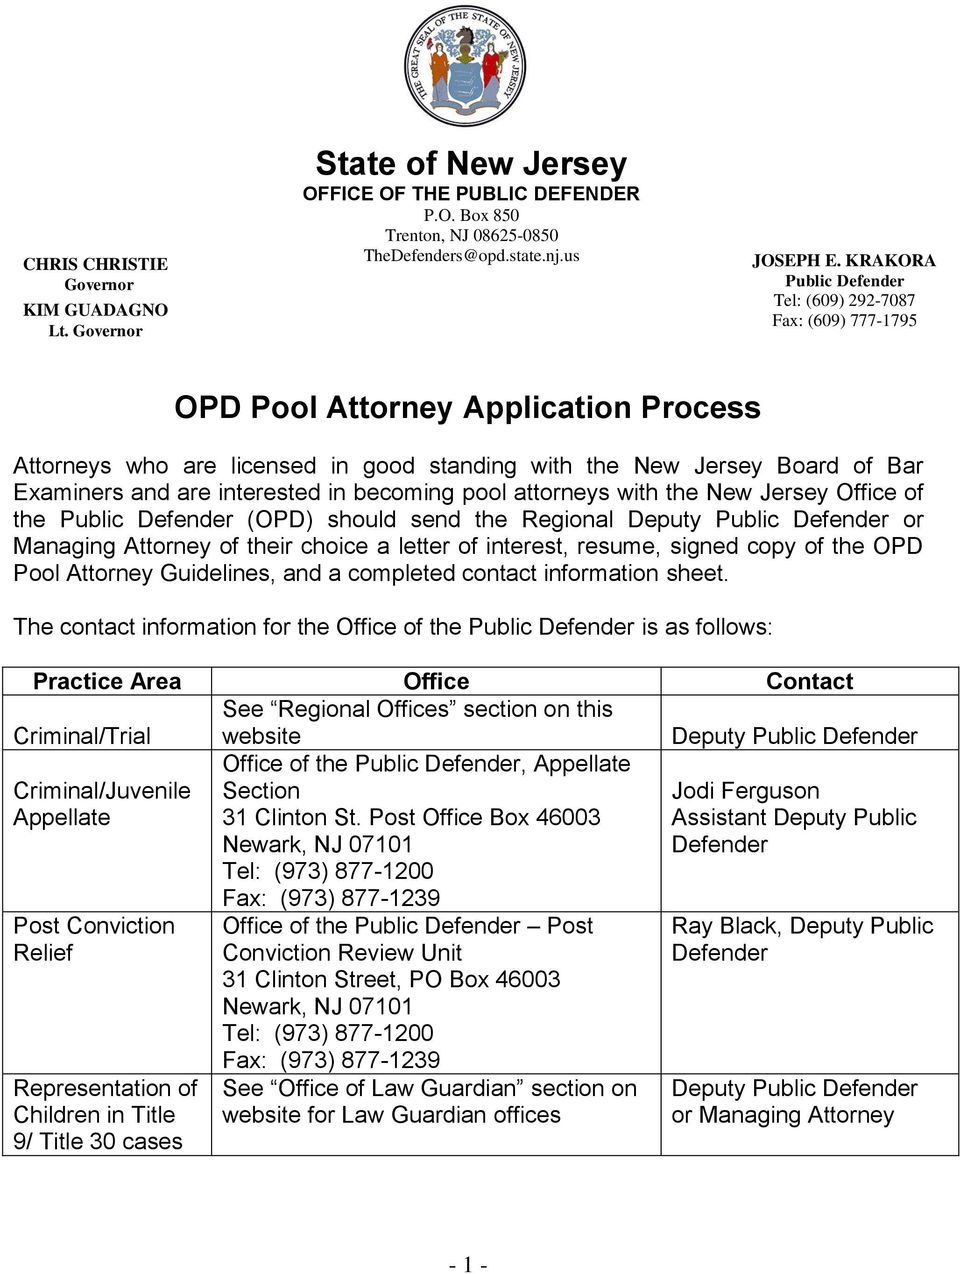 interested in becoming pool attorneys with the New Jersey Office of the Public Defender (OPD) should send the Regional Deputy Public Defender or Managing Attorney of their choice a letter of